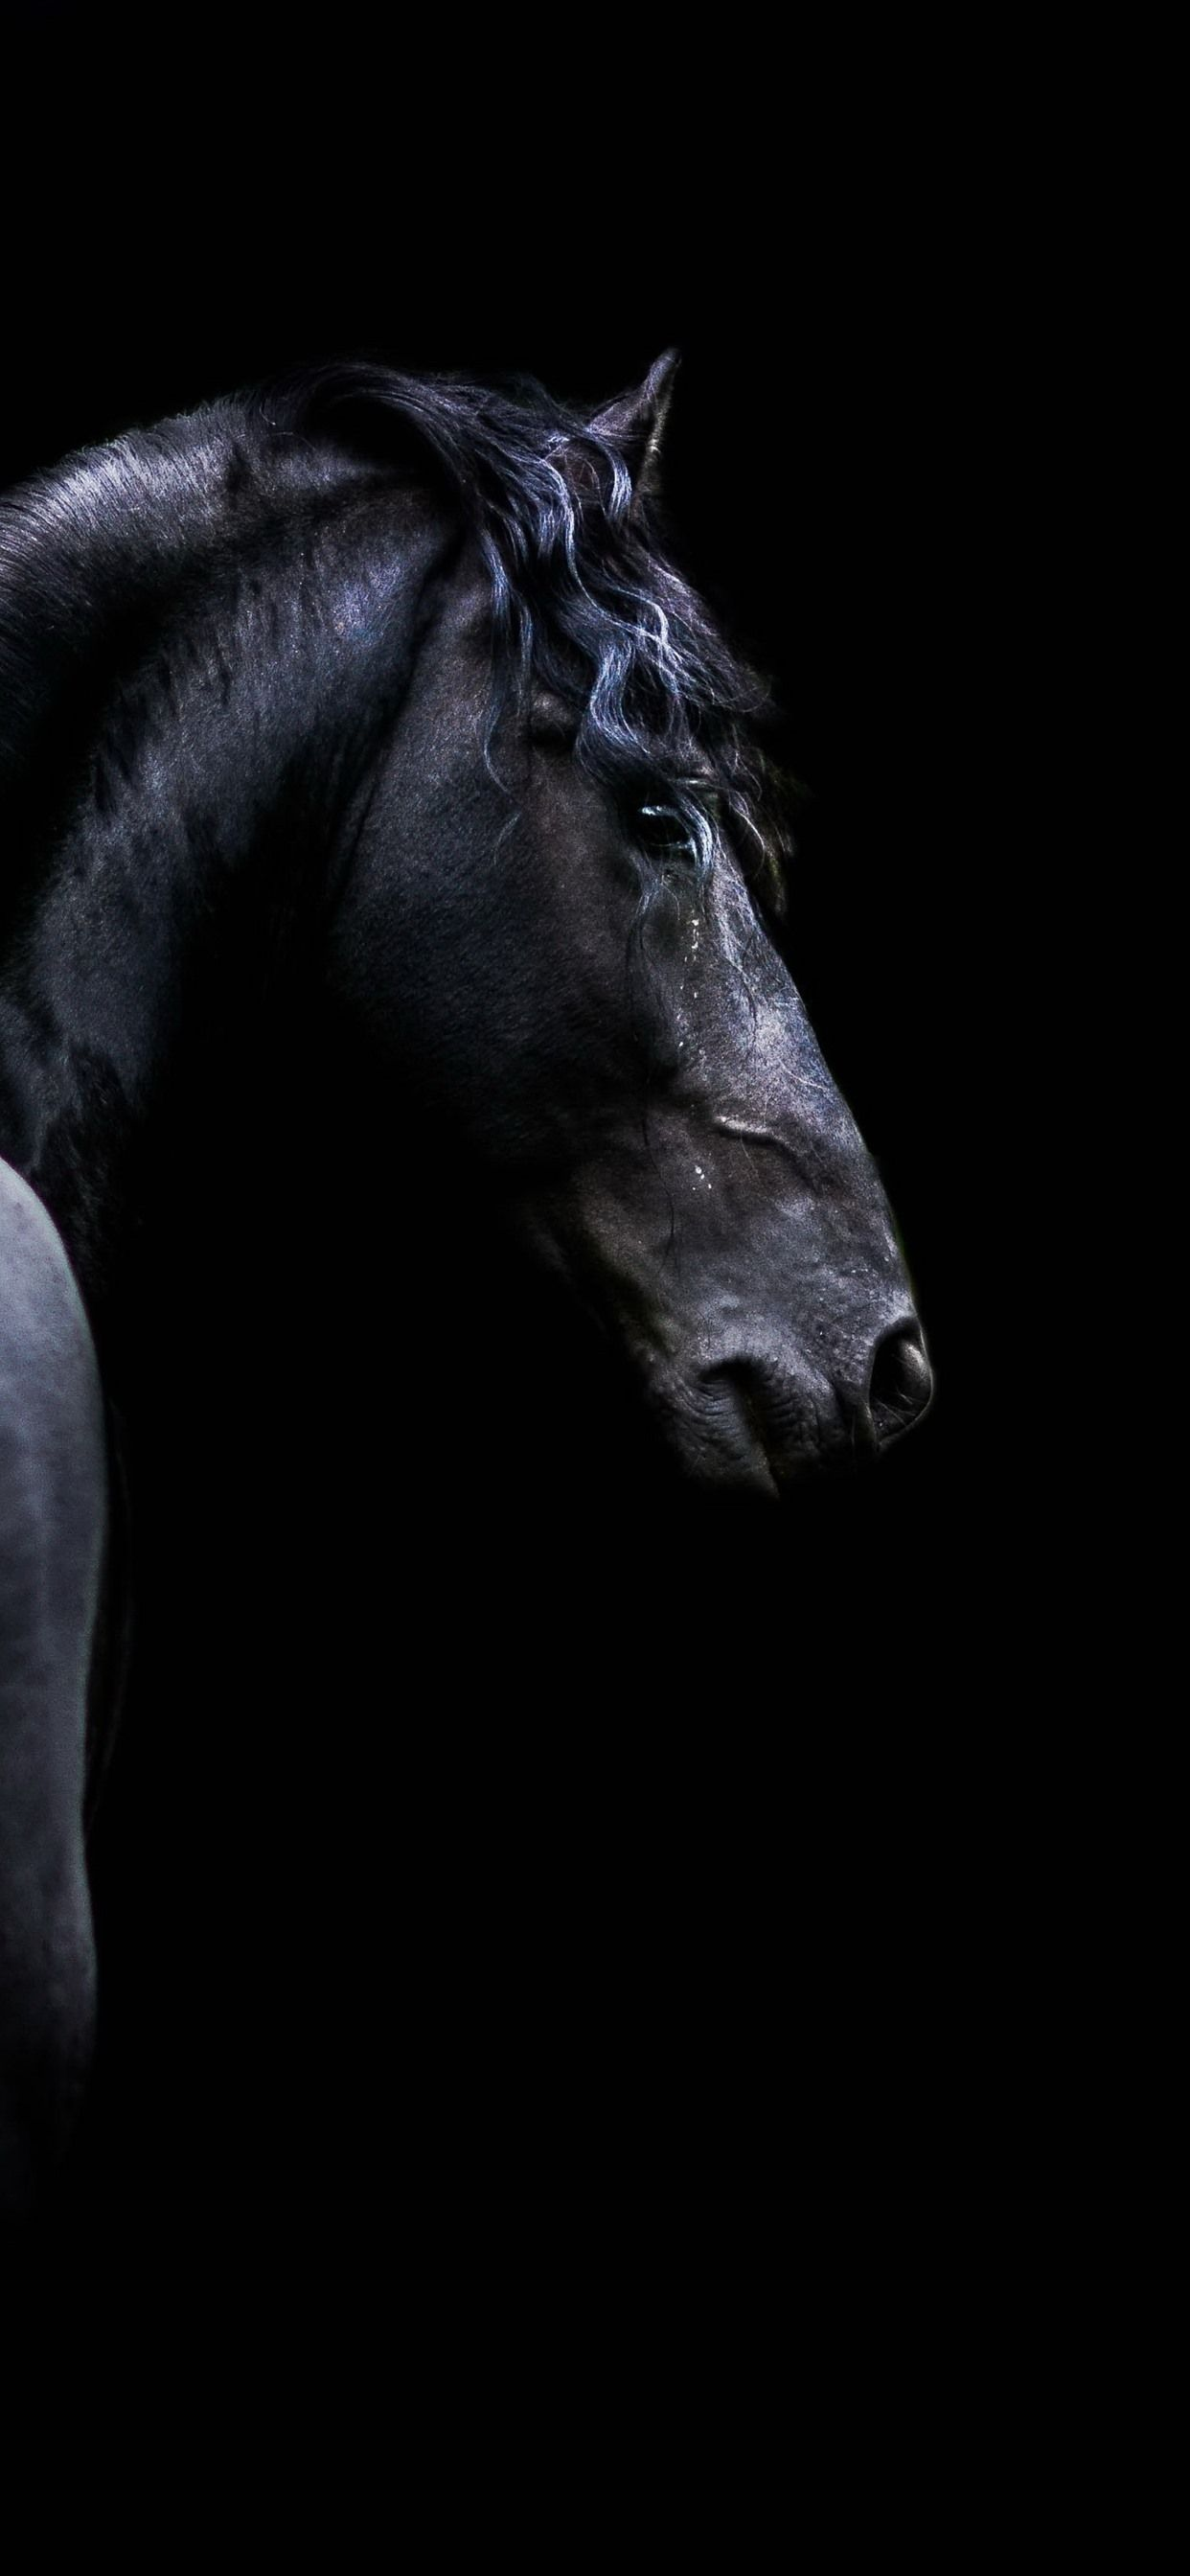 Horse Iphone Wallpapers Top Free Horse Iphone Backgrounds